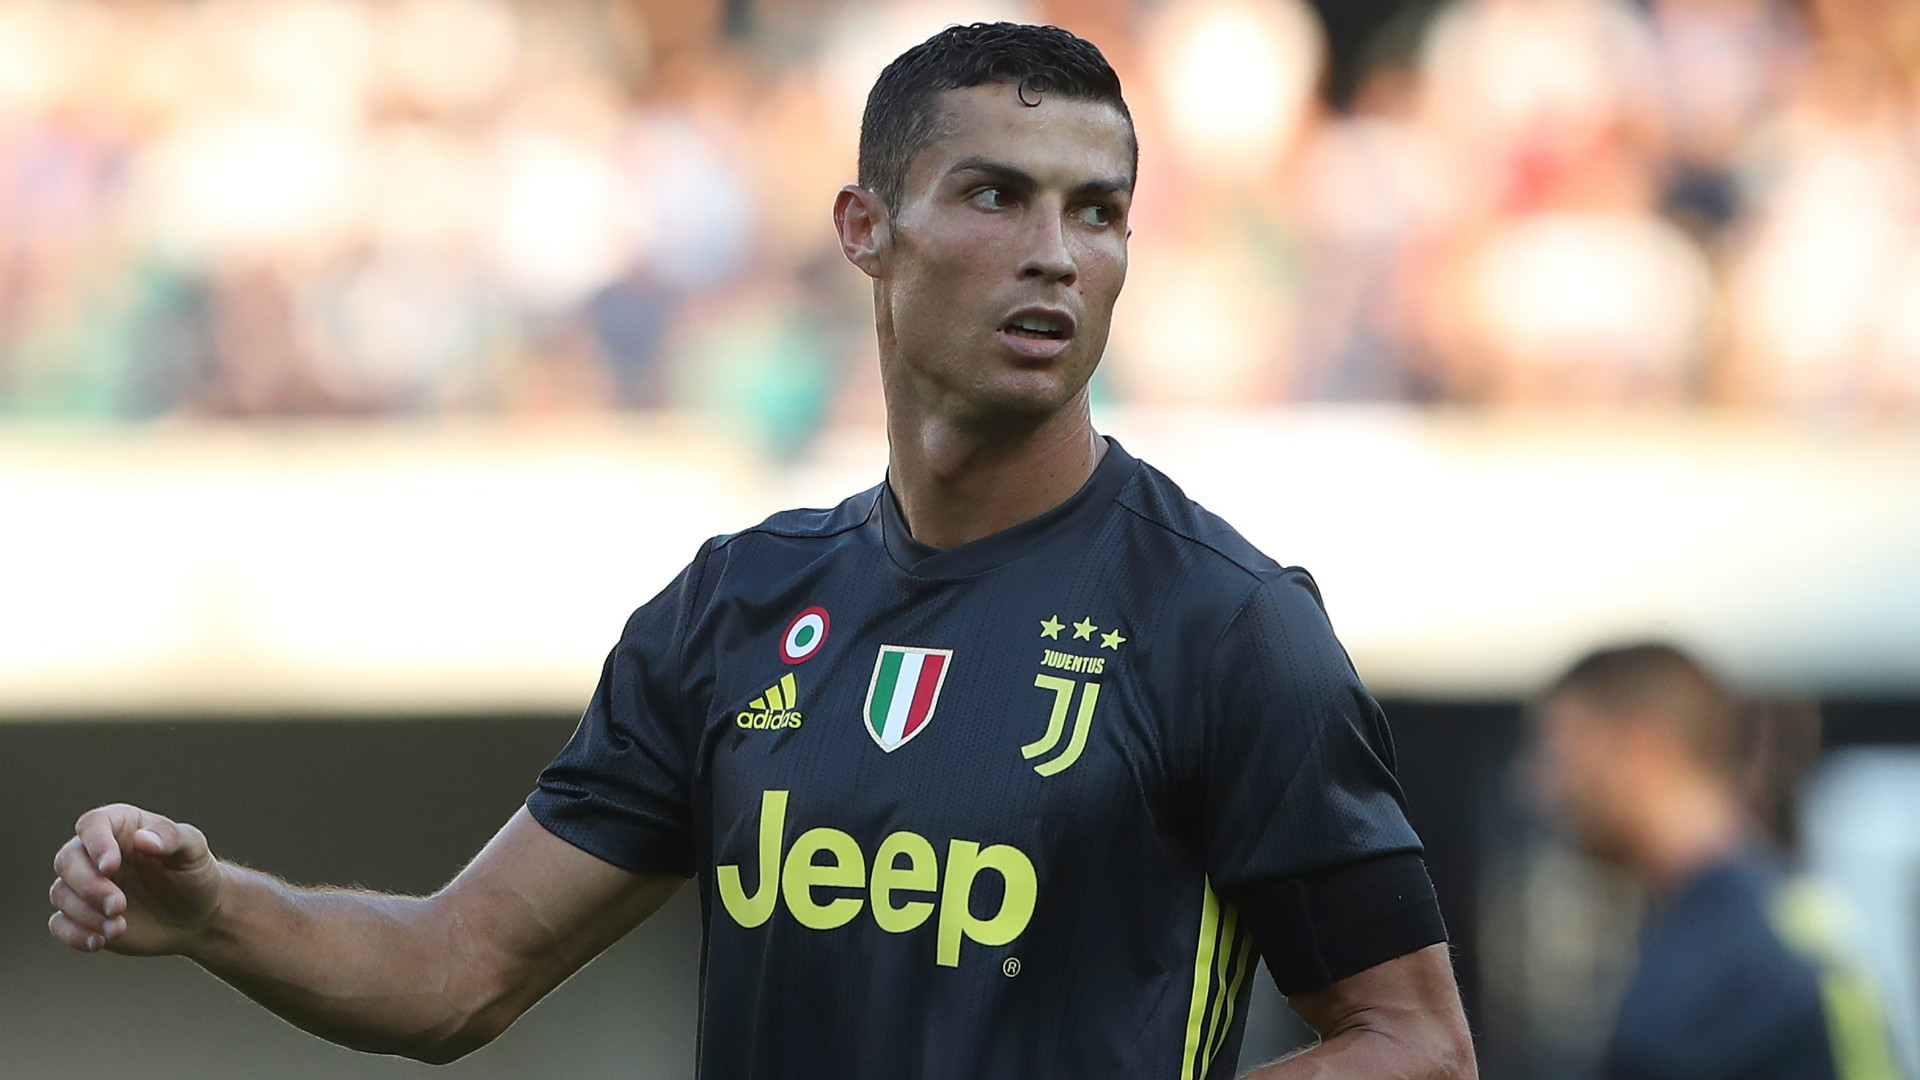 Cristiano Ronaldo's family are now Juventus fans as star shares Instagram photo